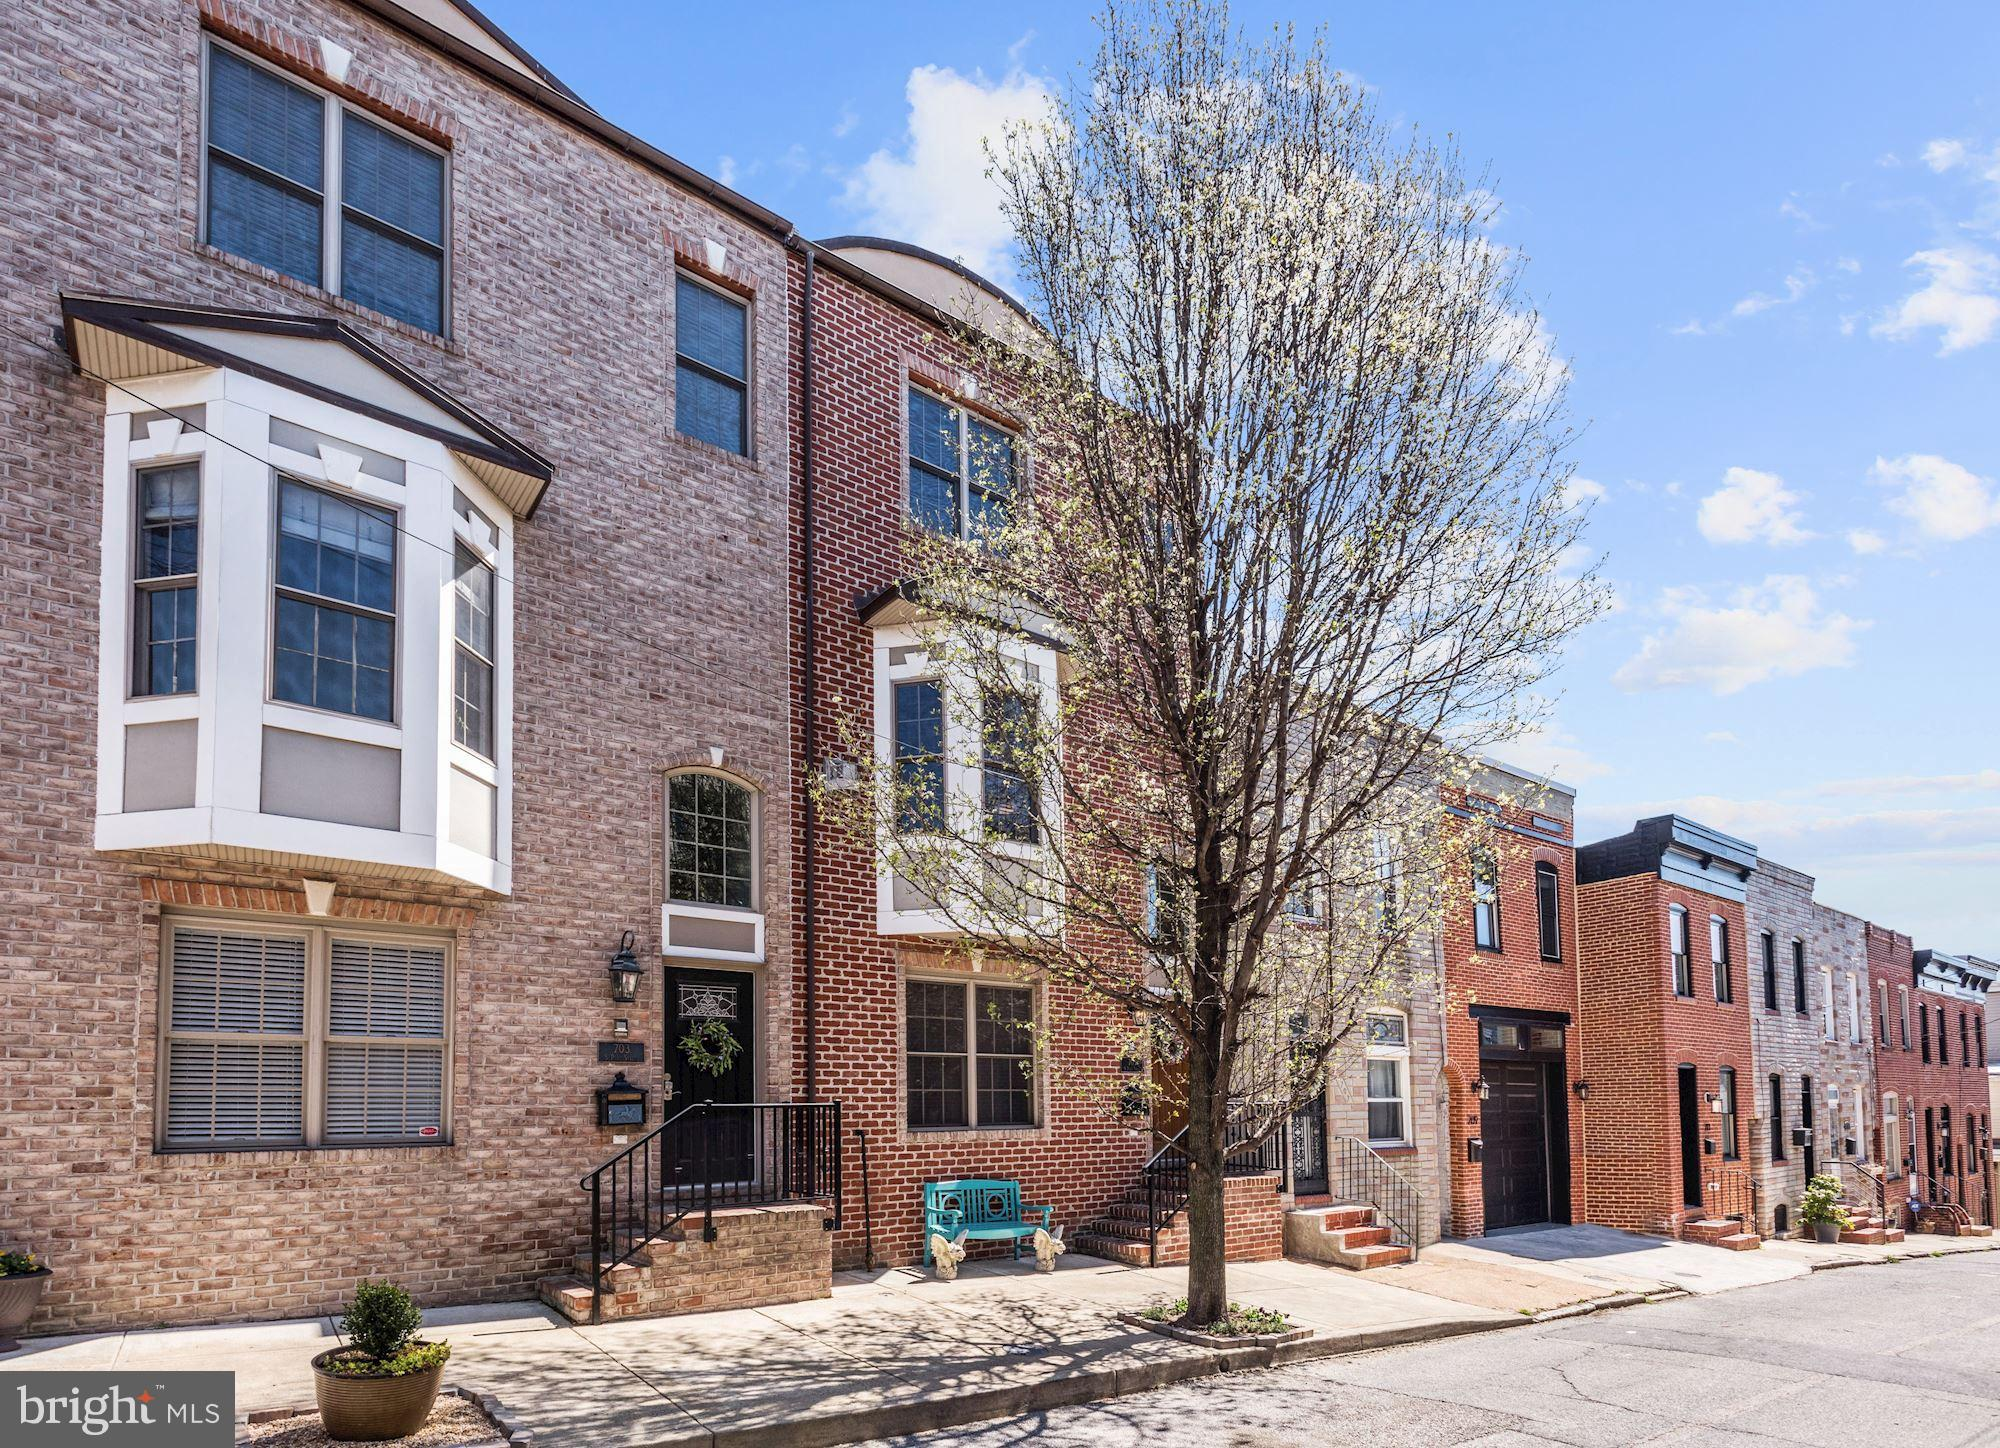 705 S PORT STREET, BALTIMORE, MD 21224